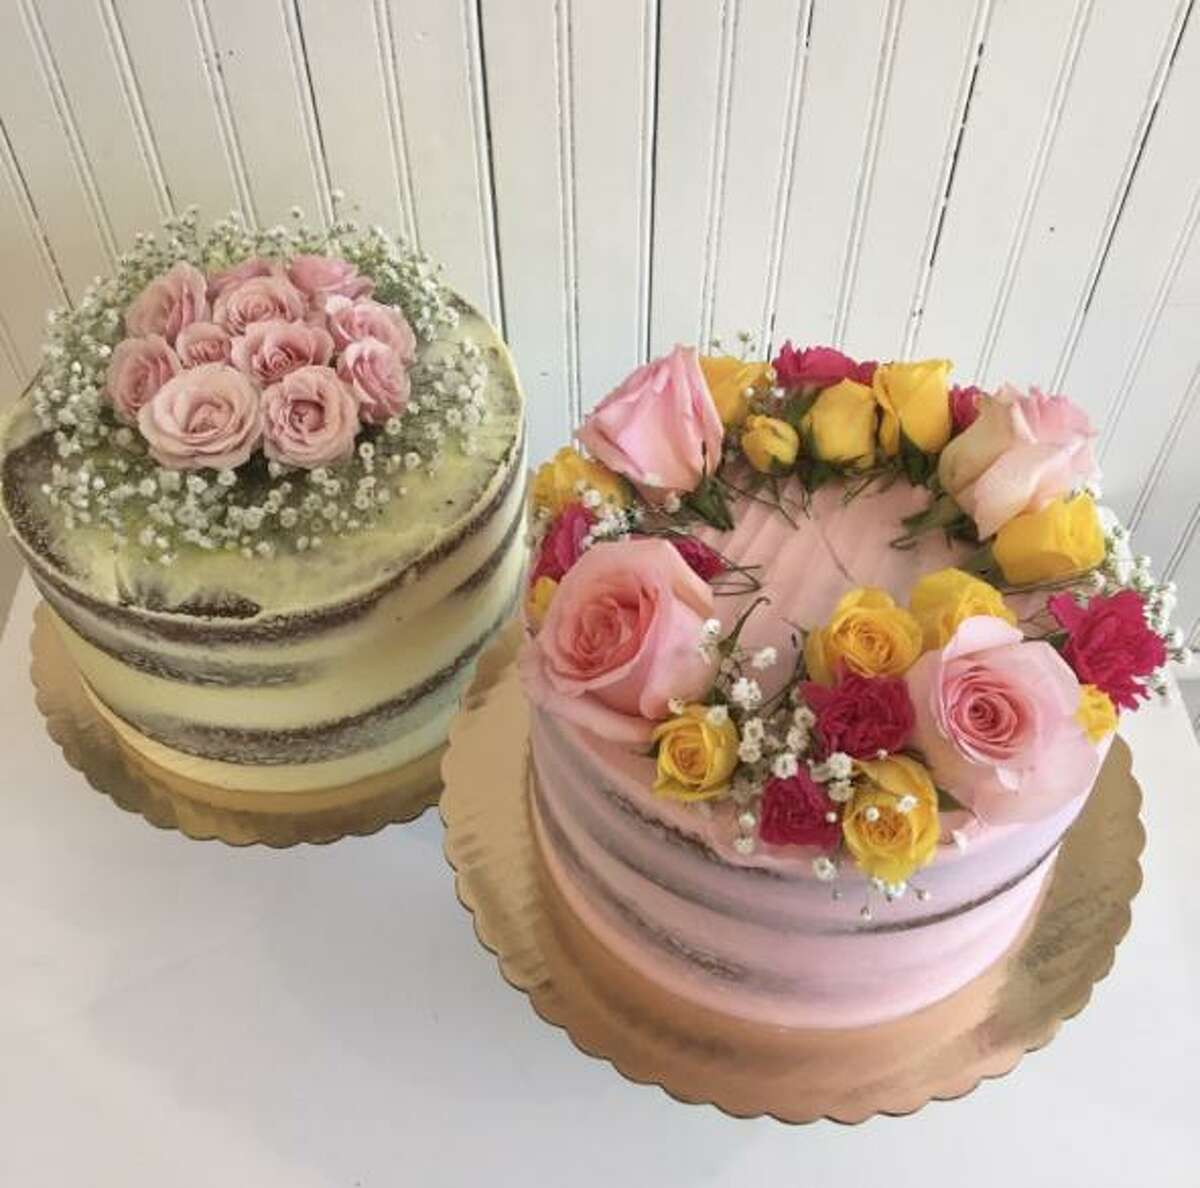 """Cakes from Wildflour Confections in Seymour. """"We are not closing because of COVID,"""" DeMatteo said. It's the uncertainty and the length of time she'll be away, which, she says, won't be just like a month of training. """"I don't want to leave someone else hanging in case a third wave comes,"""" she said."""